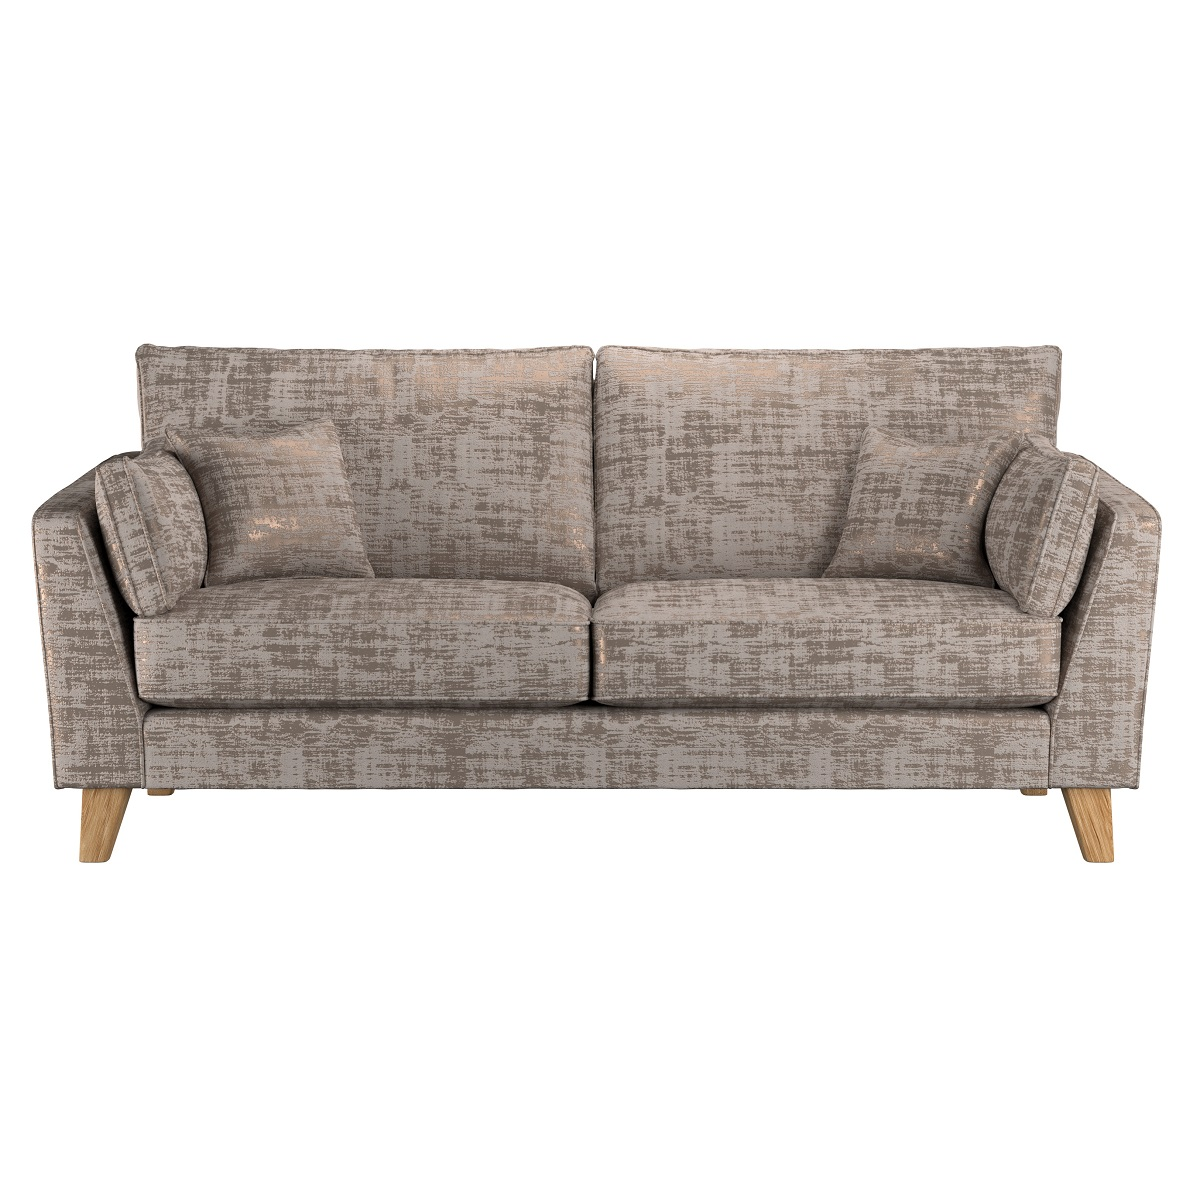 Quincy 3 Seater Sofa